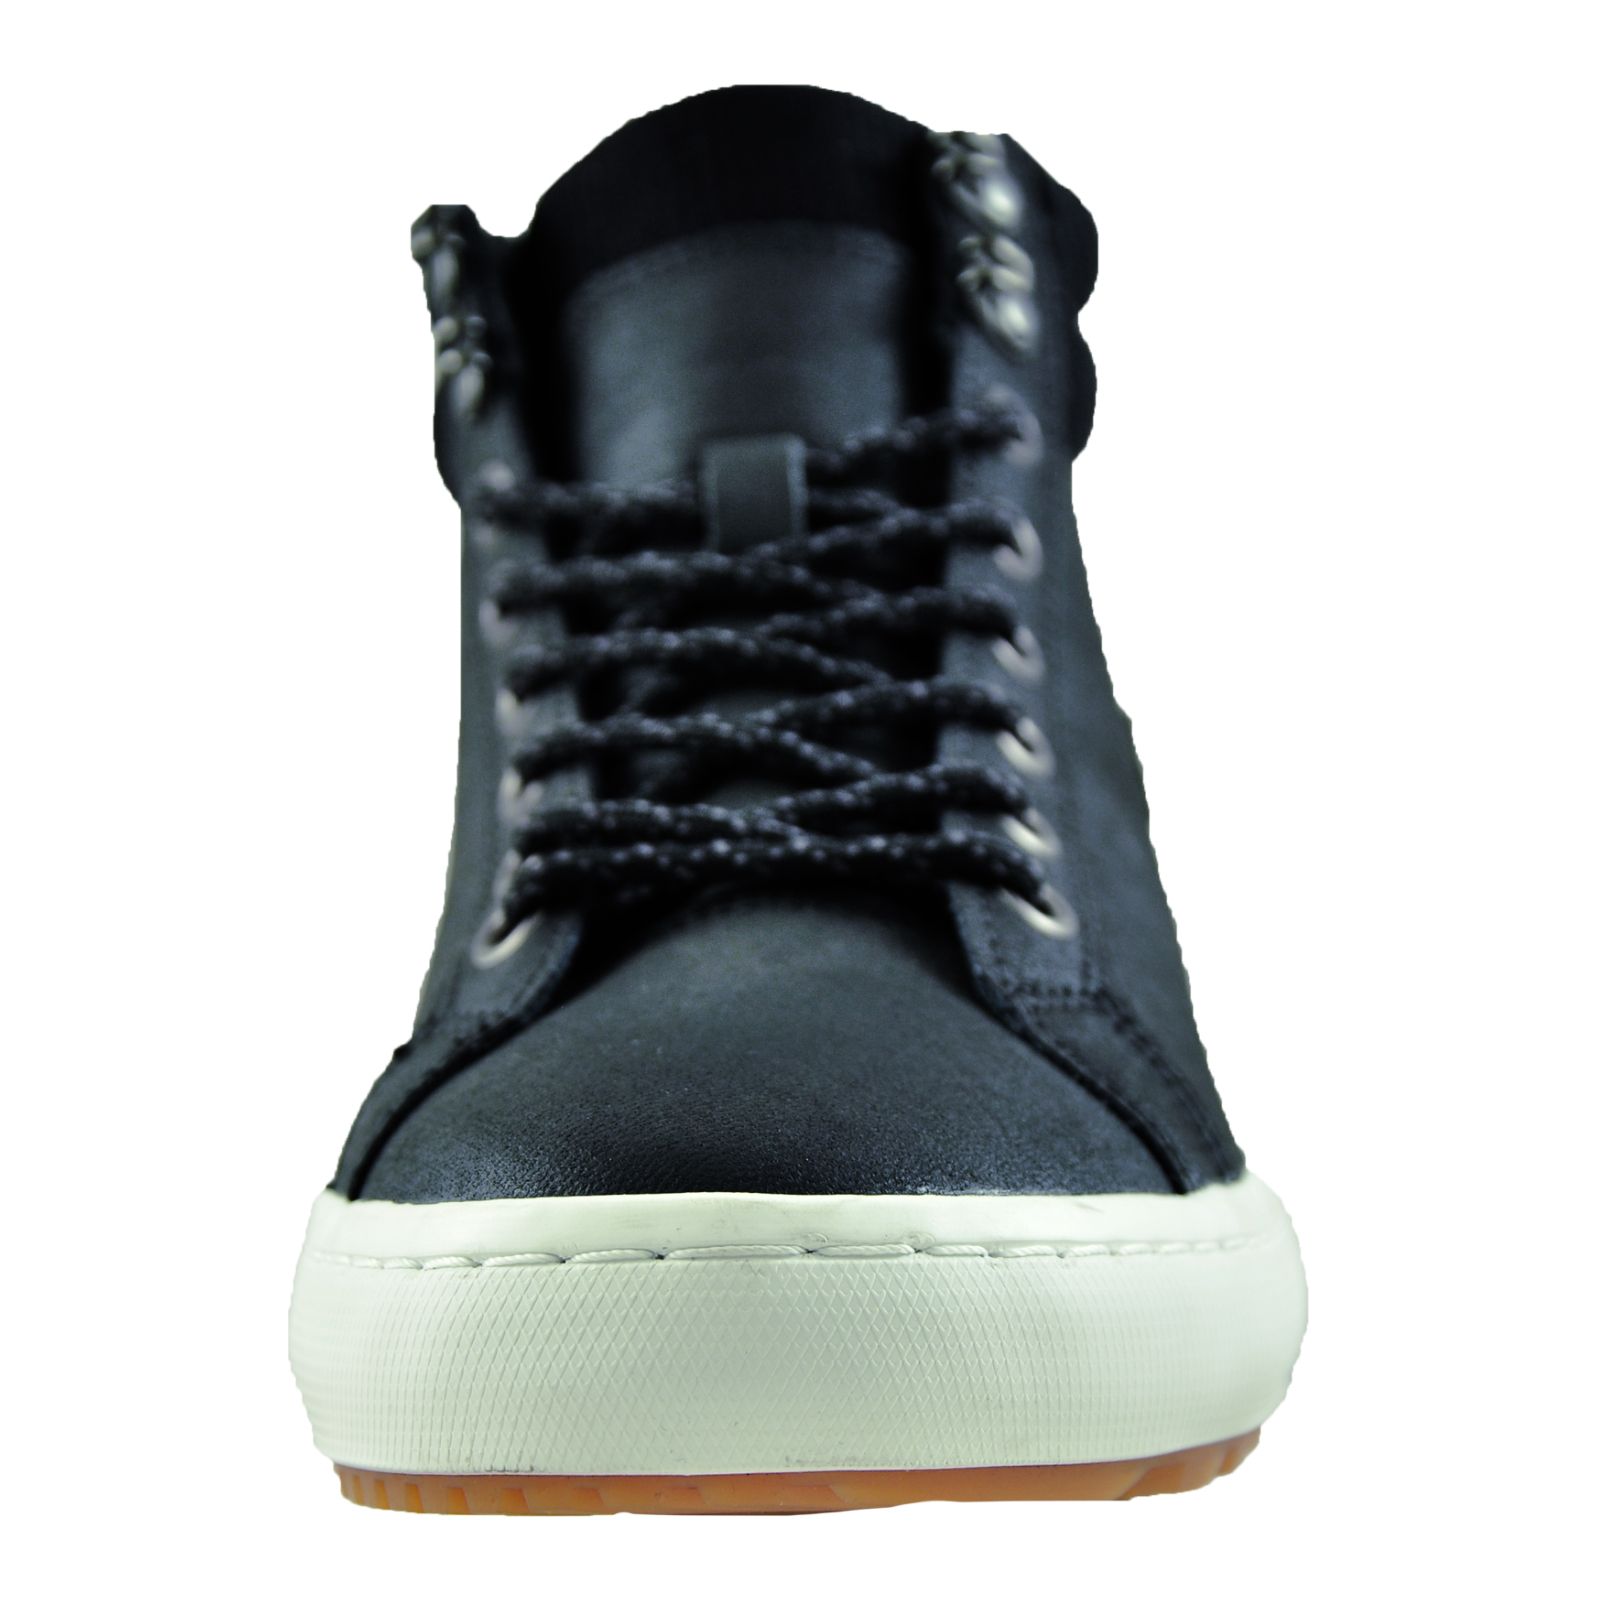 1897934c Details about Lacoste Men's Straightset Insulac Mid Casual Designer Boots  Trainers B Grade